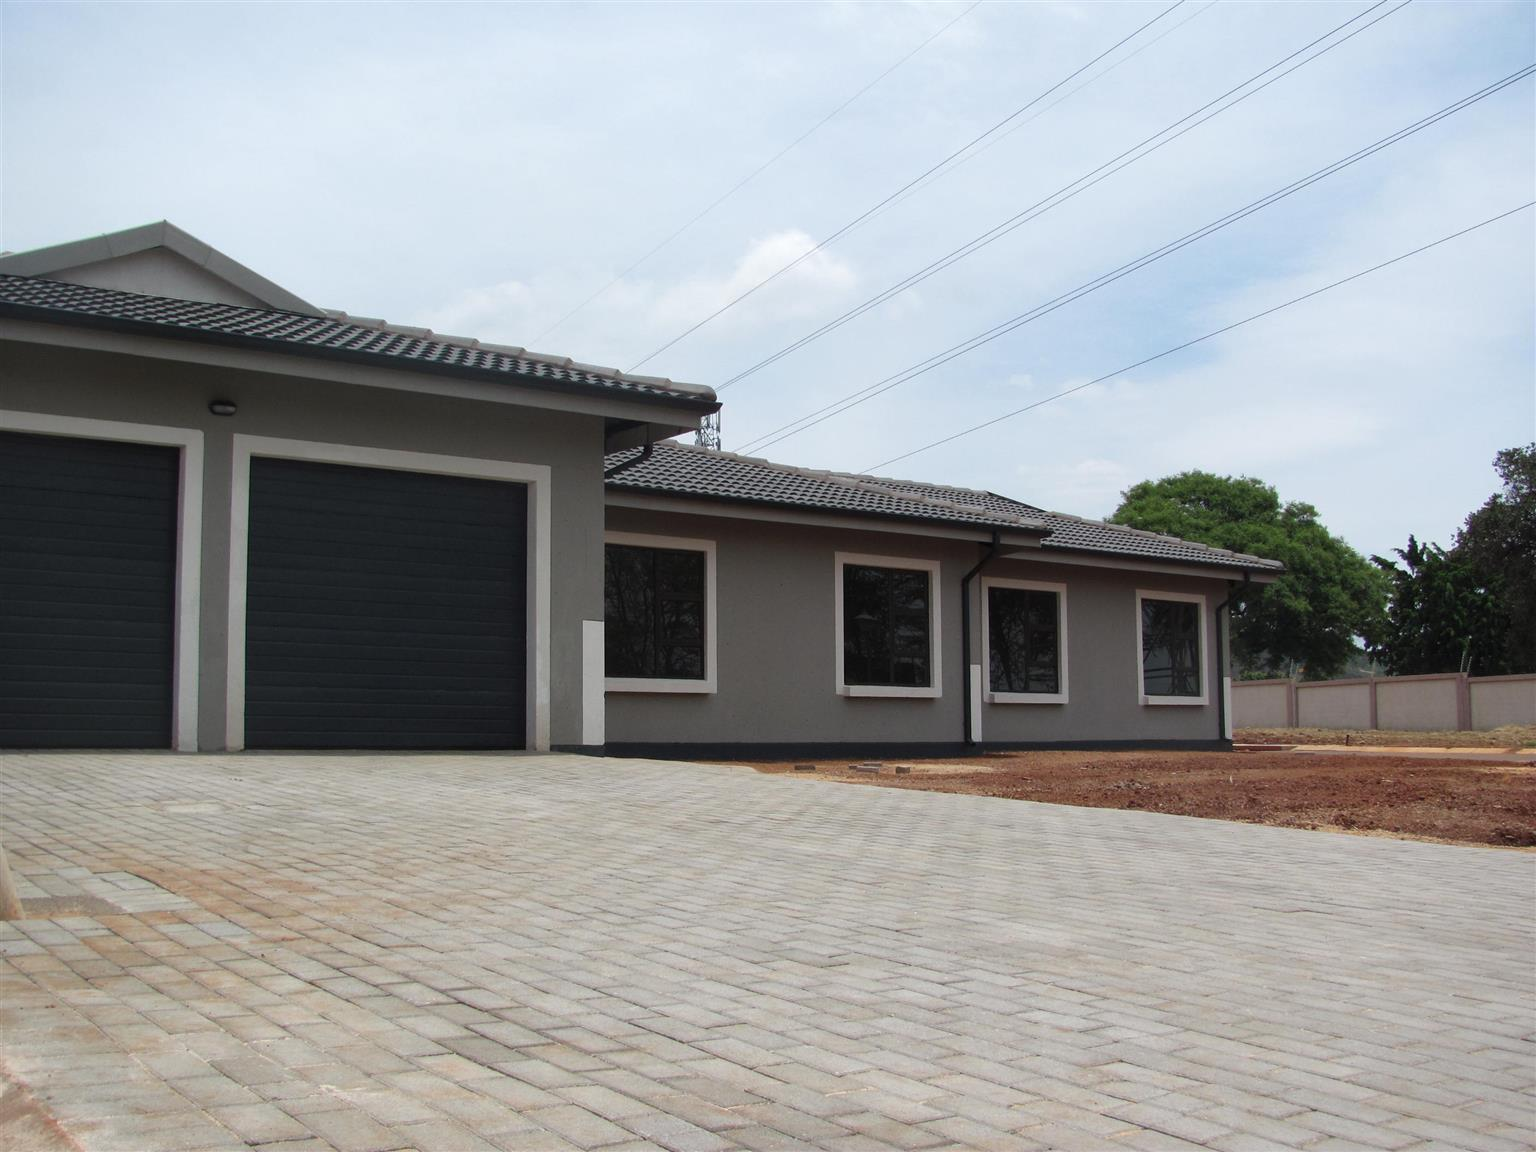 New Development in the MagaliesBerg Country Estate, Amandasig